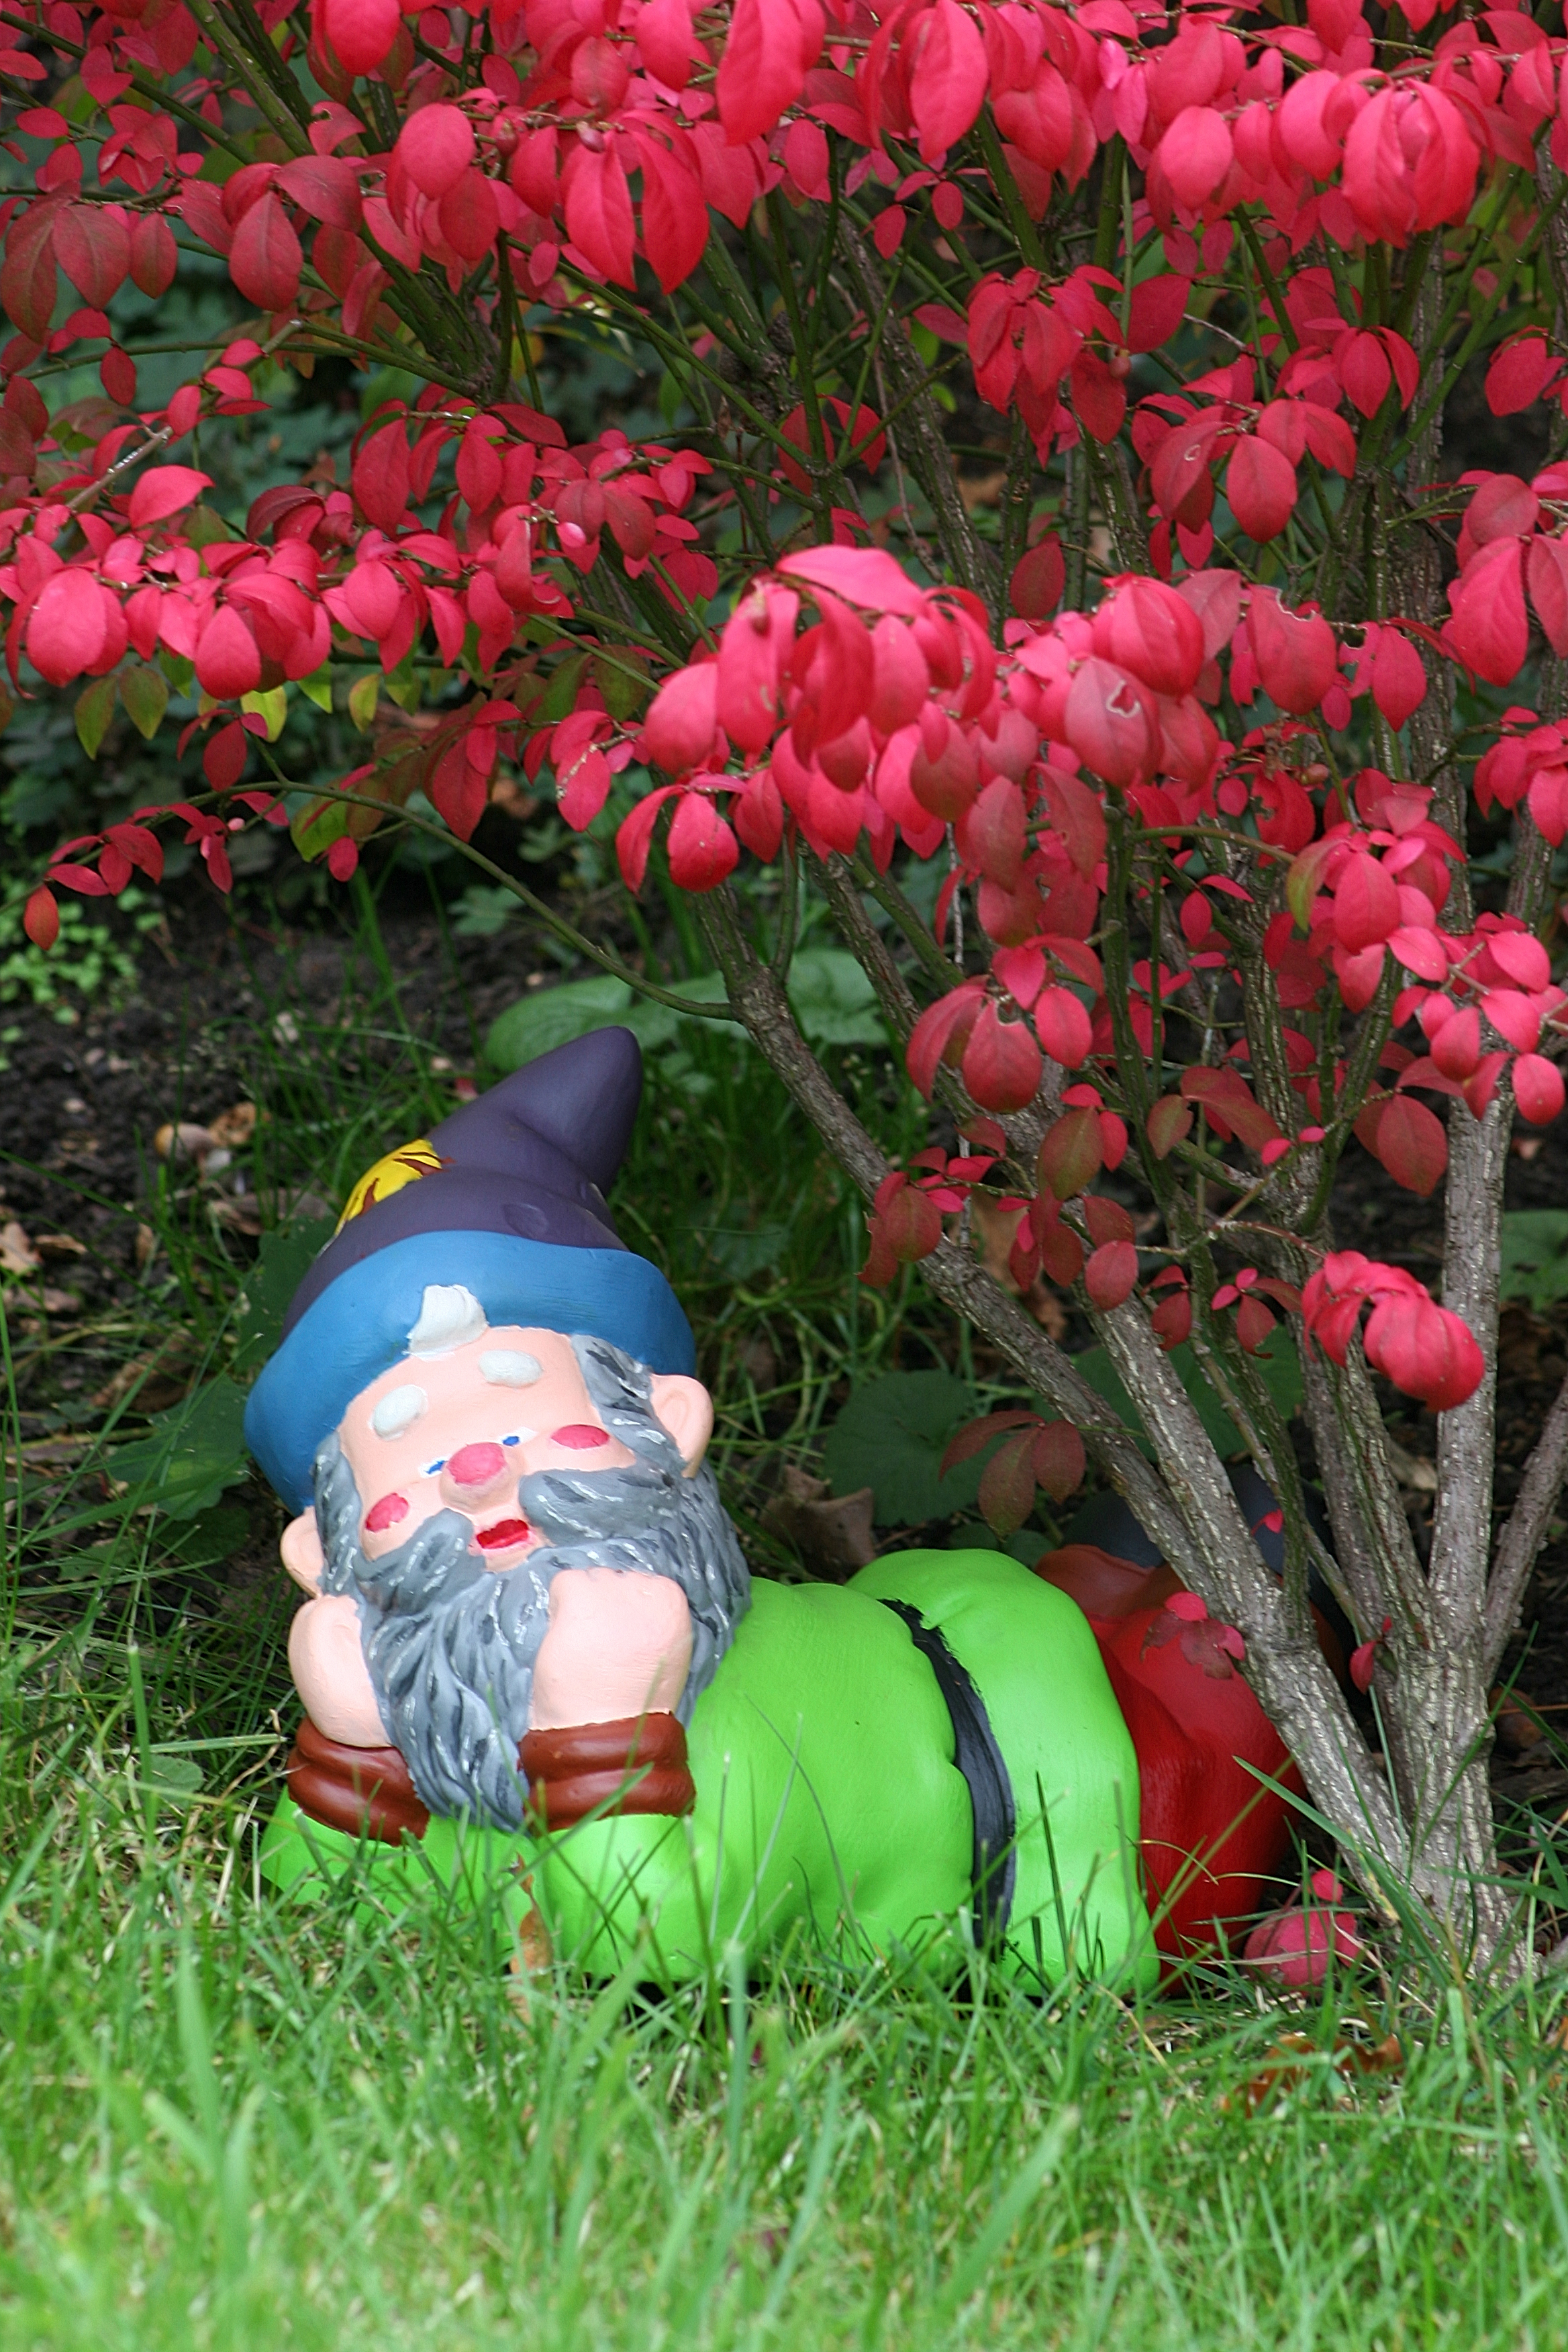 Garden gnome, Vessy Switzerland.jpg - Garden gnome